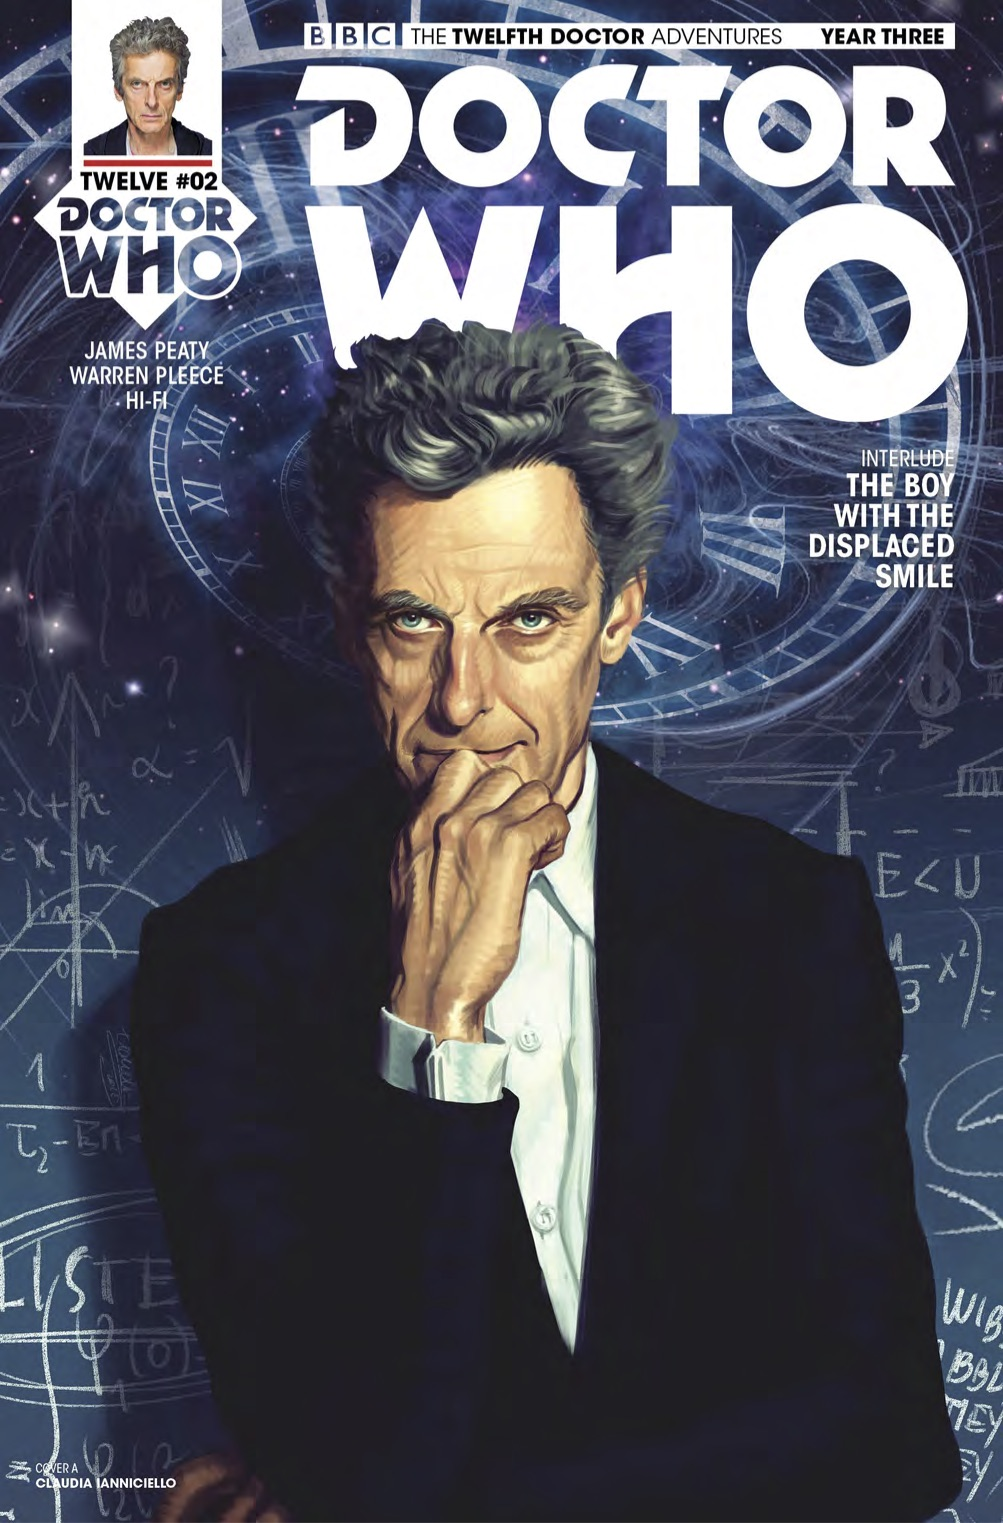 TWELFTH DOCTOR YEAR 3 #2 Cover A (Credit: Titan)